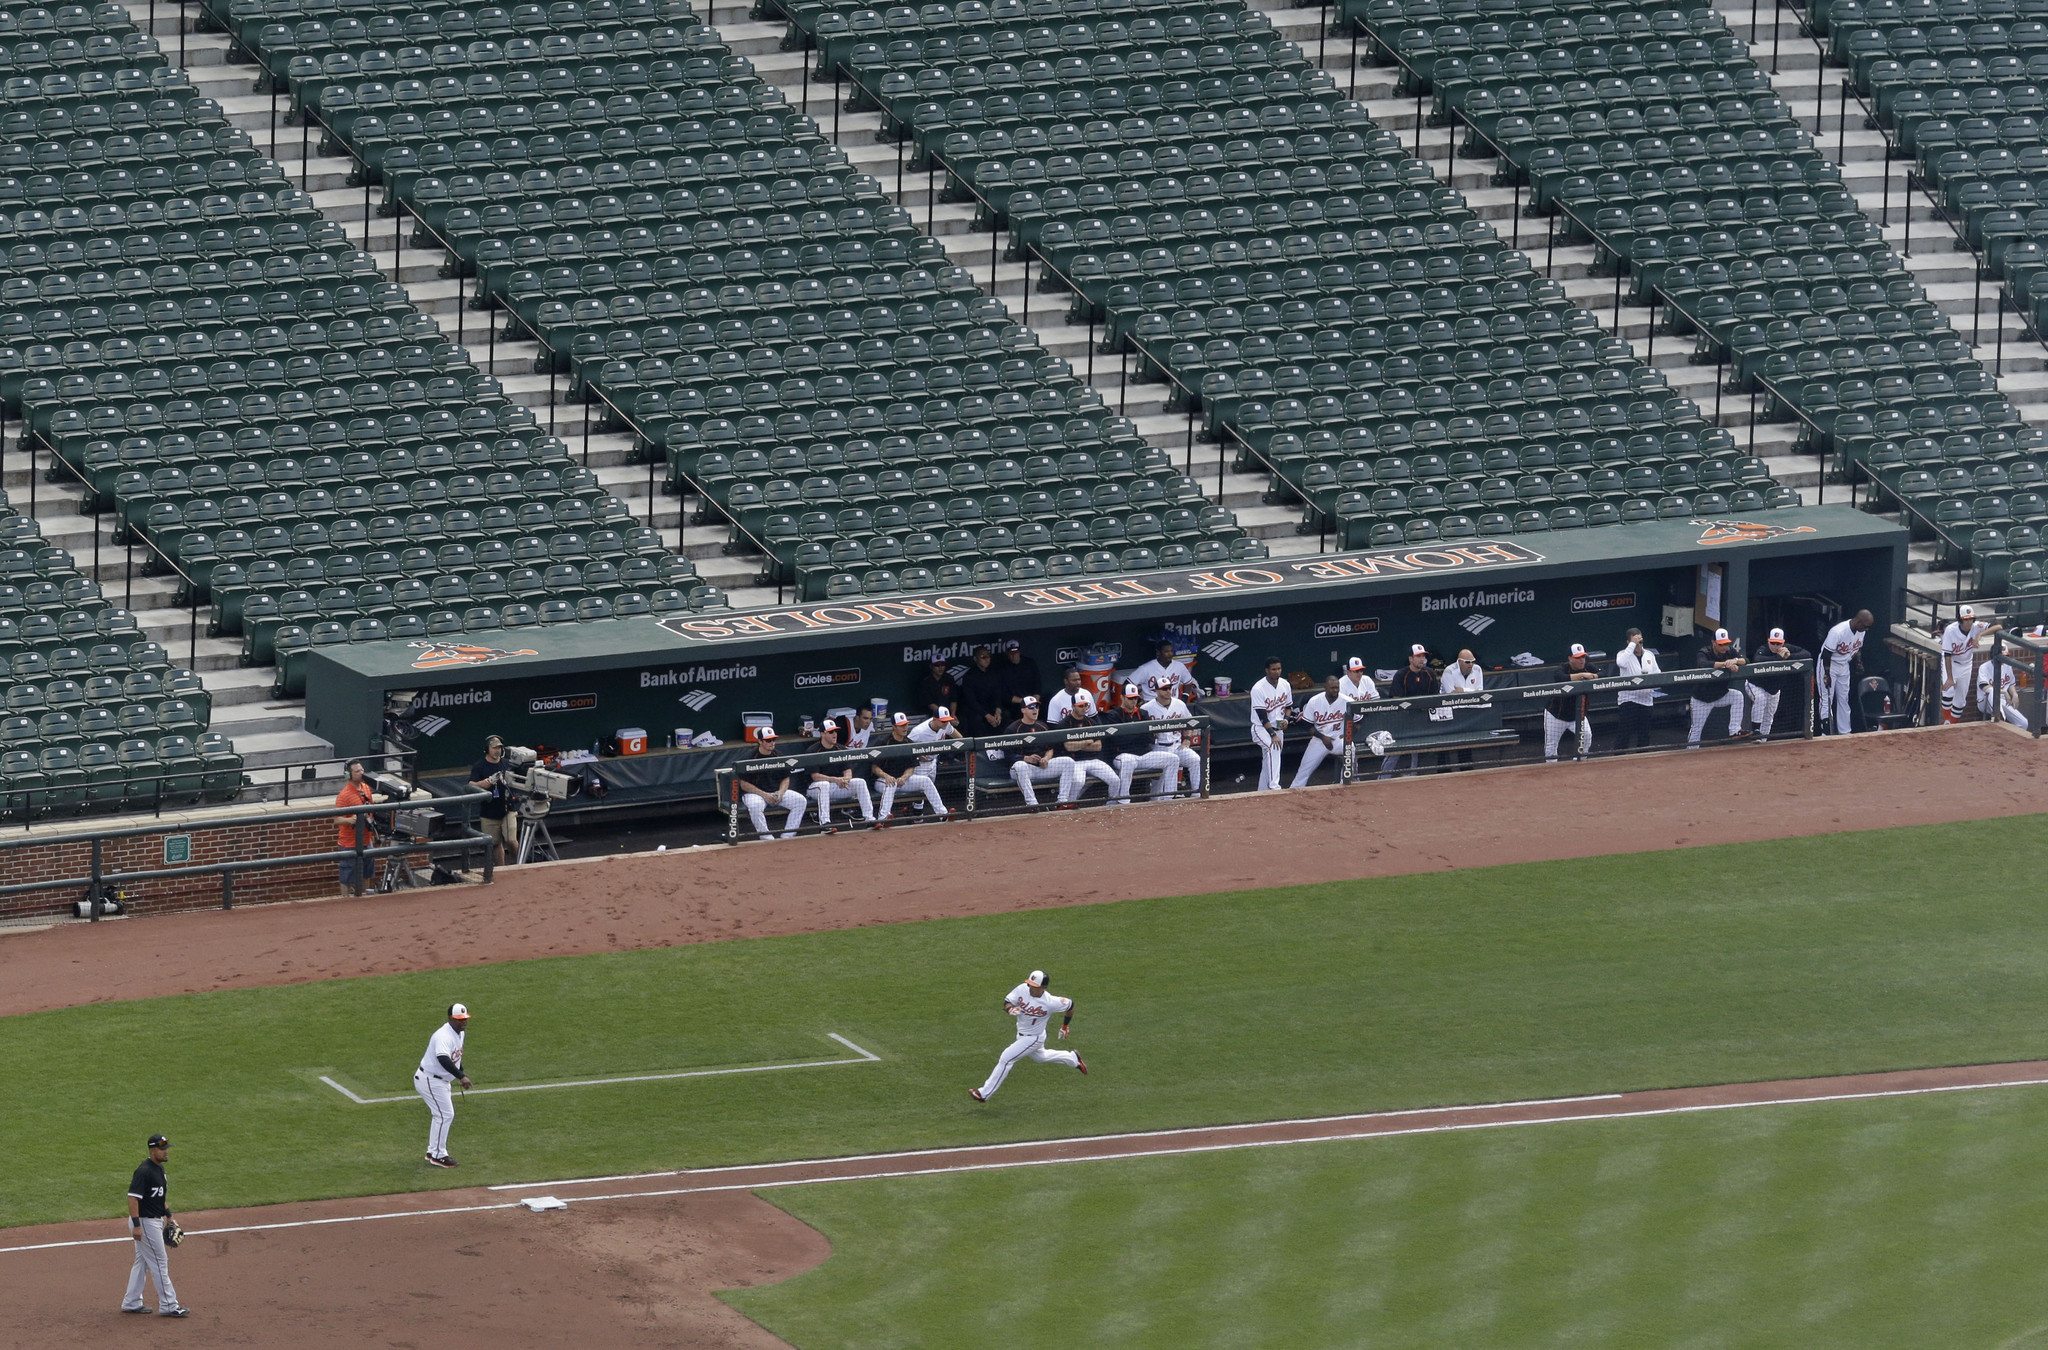 Orioles White Sox Play To Empty Stadium Hartford Courant